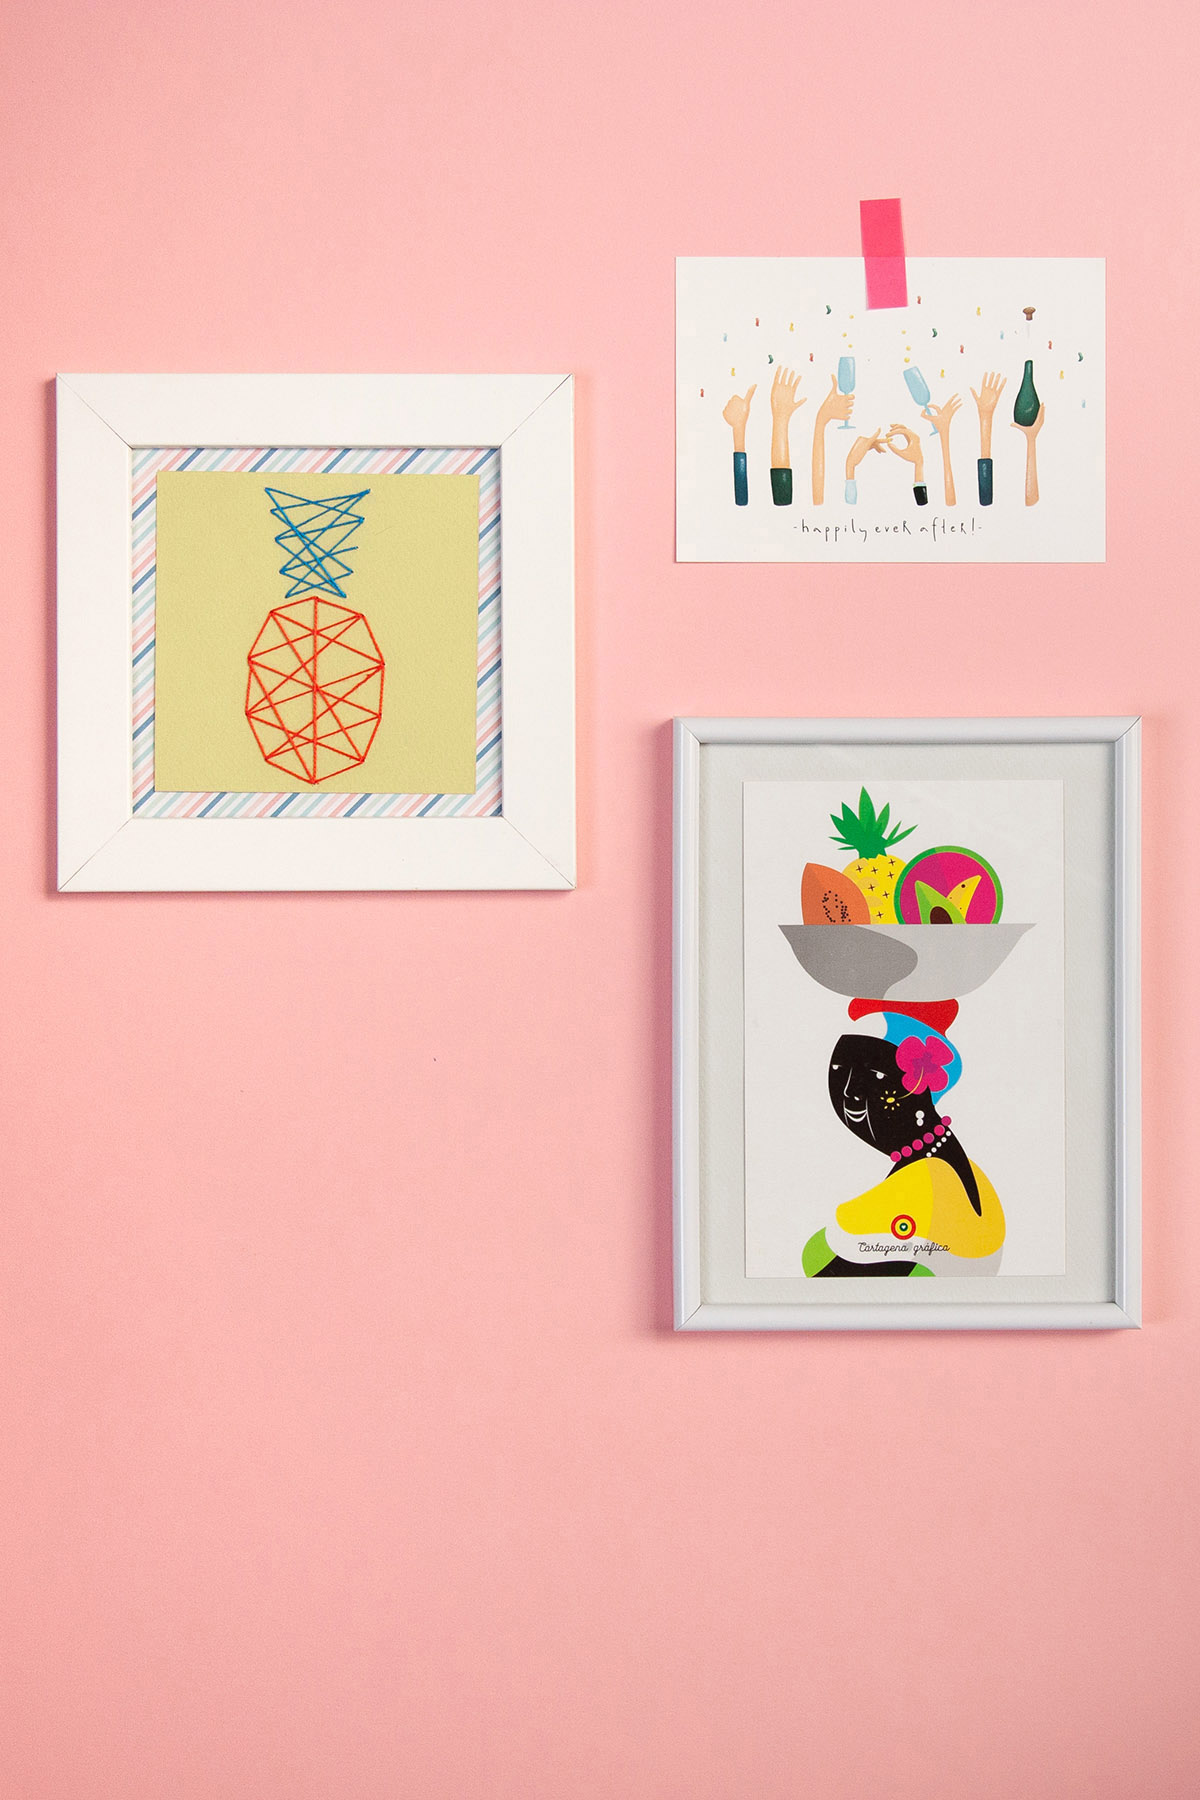 DIY Pineapple String Wall Art - Cute wall art idea. - www.yeswemadethis.com